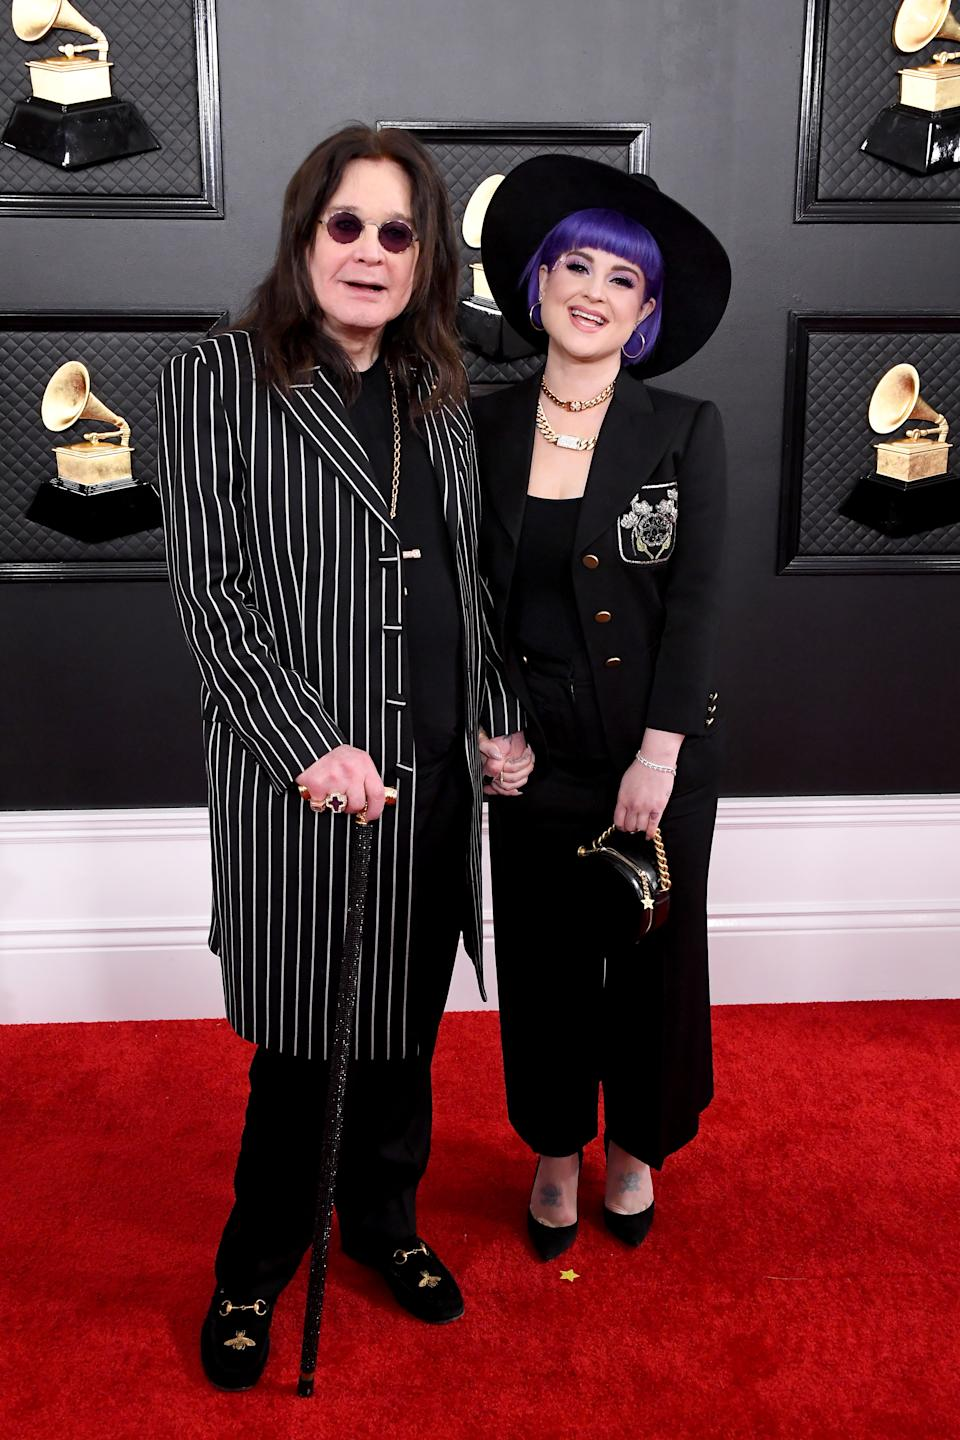 The 71-year-old rock legend and Grammy presenter arrived on the red carpet with daughter Kelly, days after revealing he was diagnosed with Parkinson's disease.